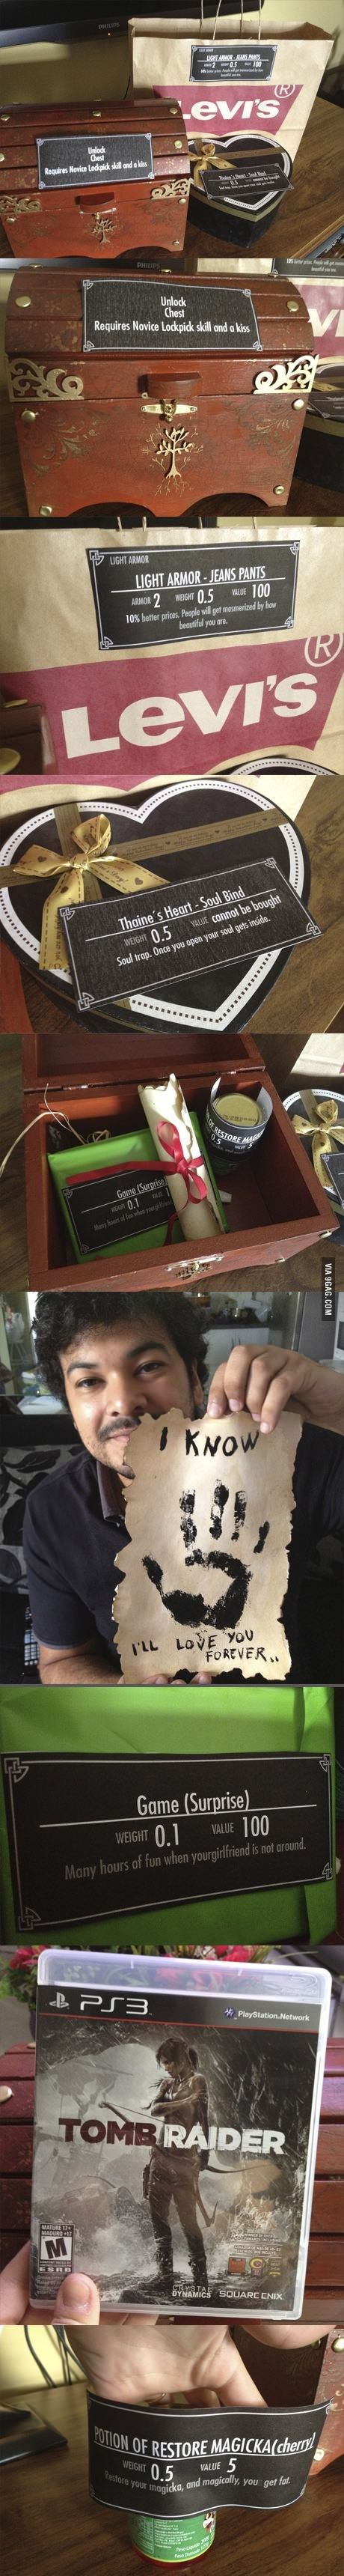 Skyrim addicted boyfriend: 7 years dating anniversary gift…